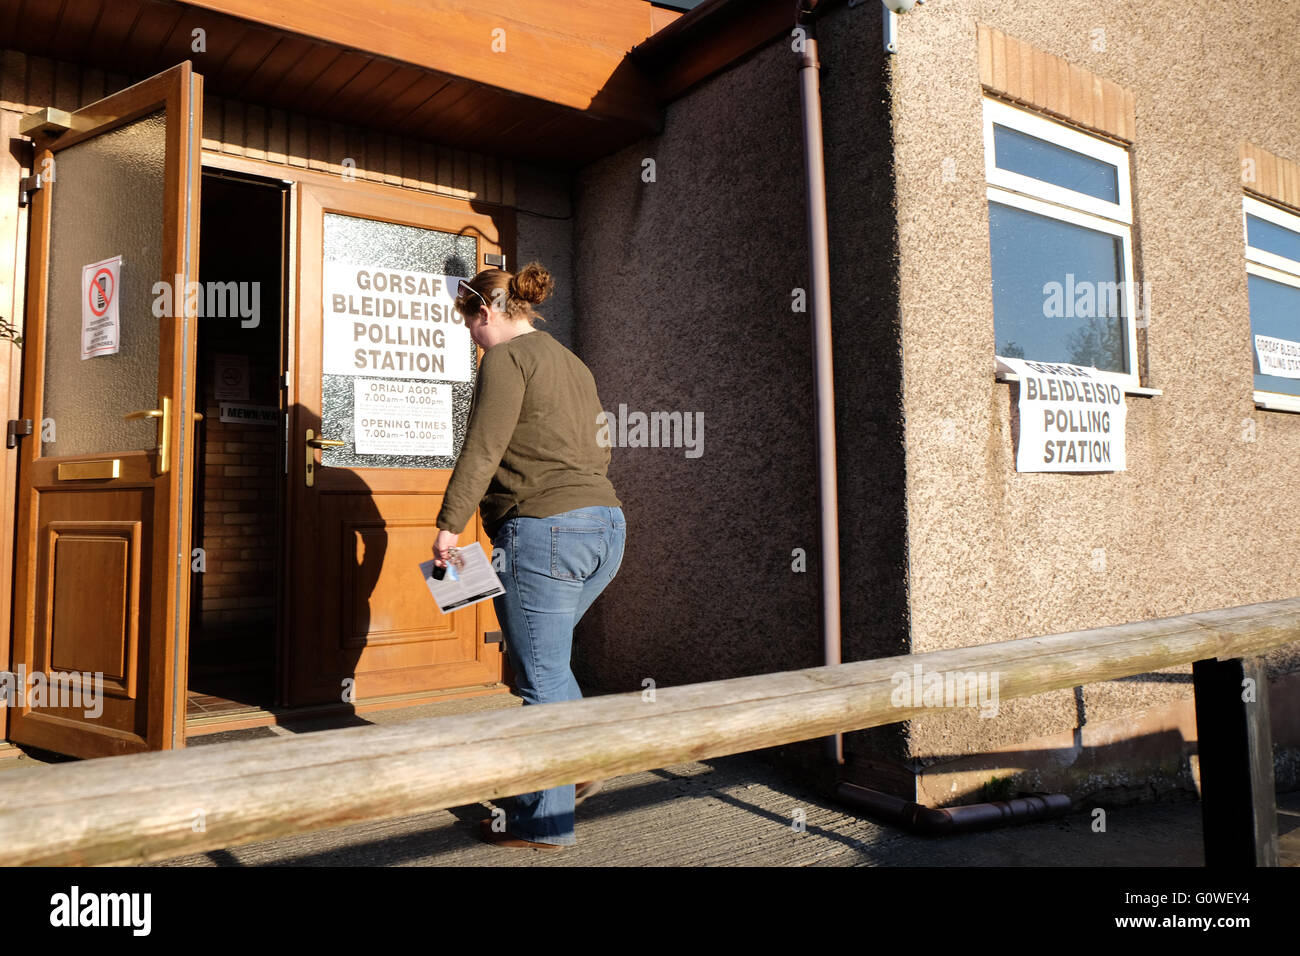 Walton, Powys. 5th May, 2016. An early morning voter arrives at the Polling Station in the village hall in the village - Stock Image